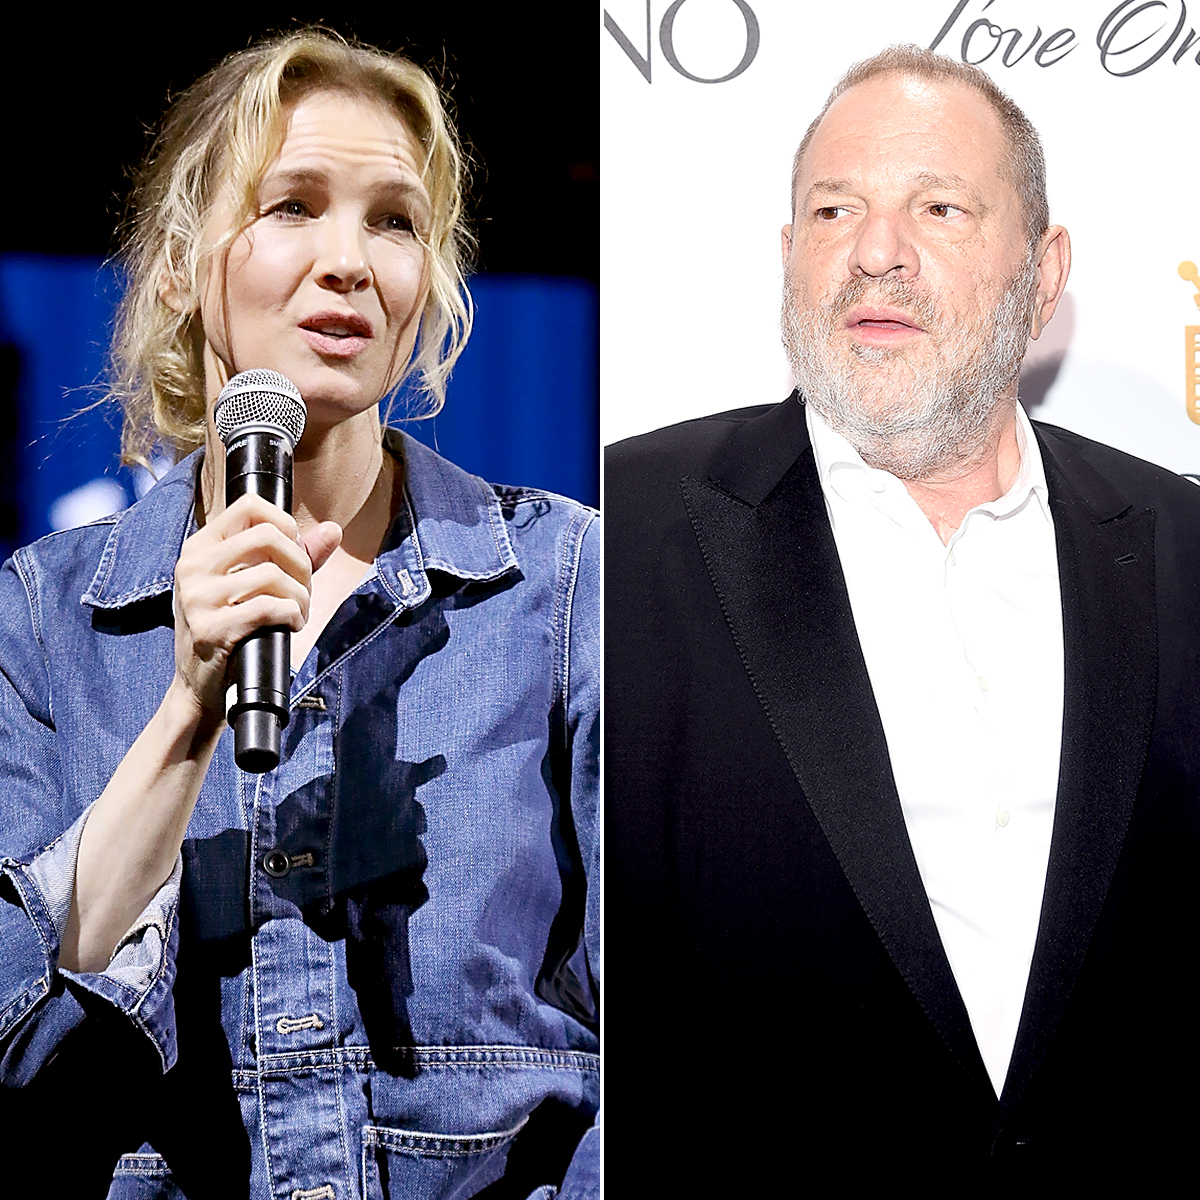 Renee Zellweger disgusted by Harvey Weinstein 'sexual favours' rumours